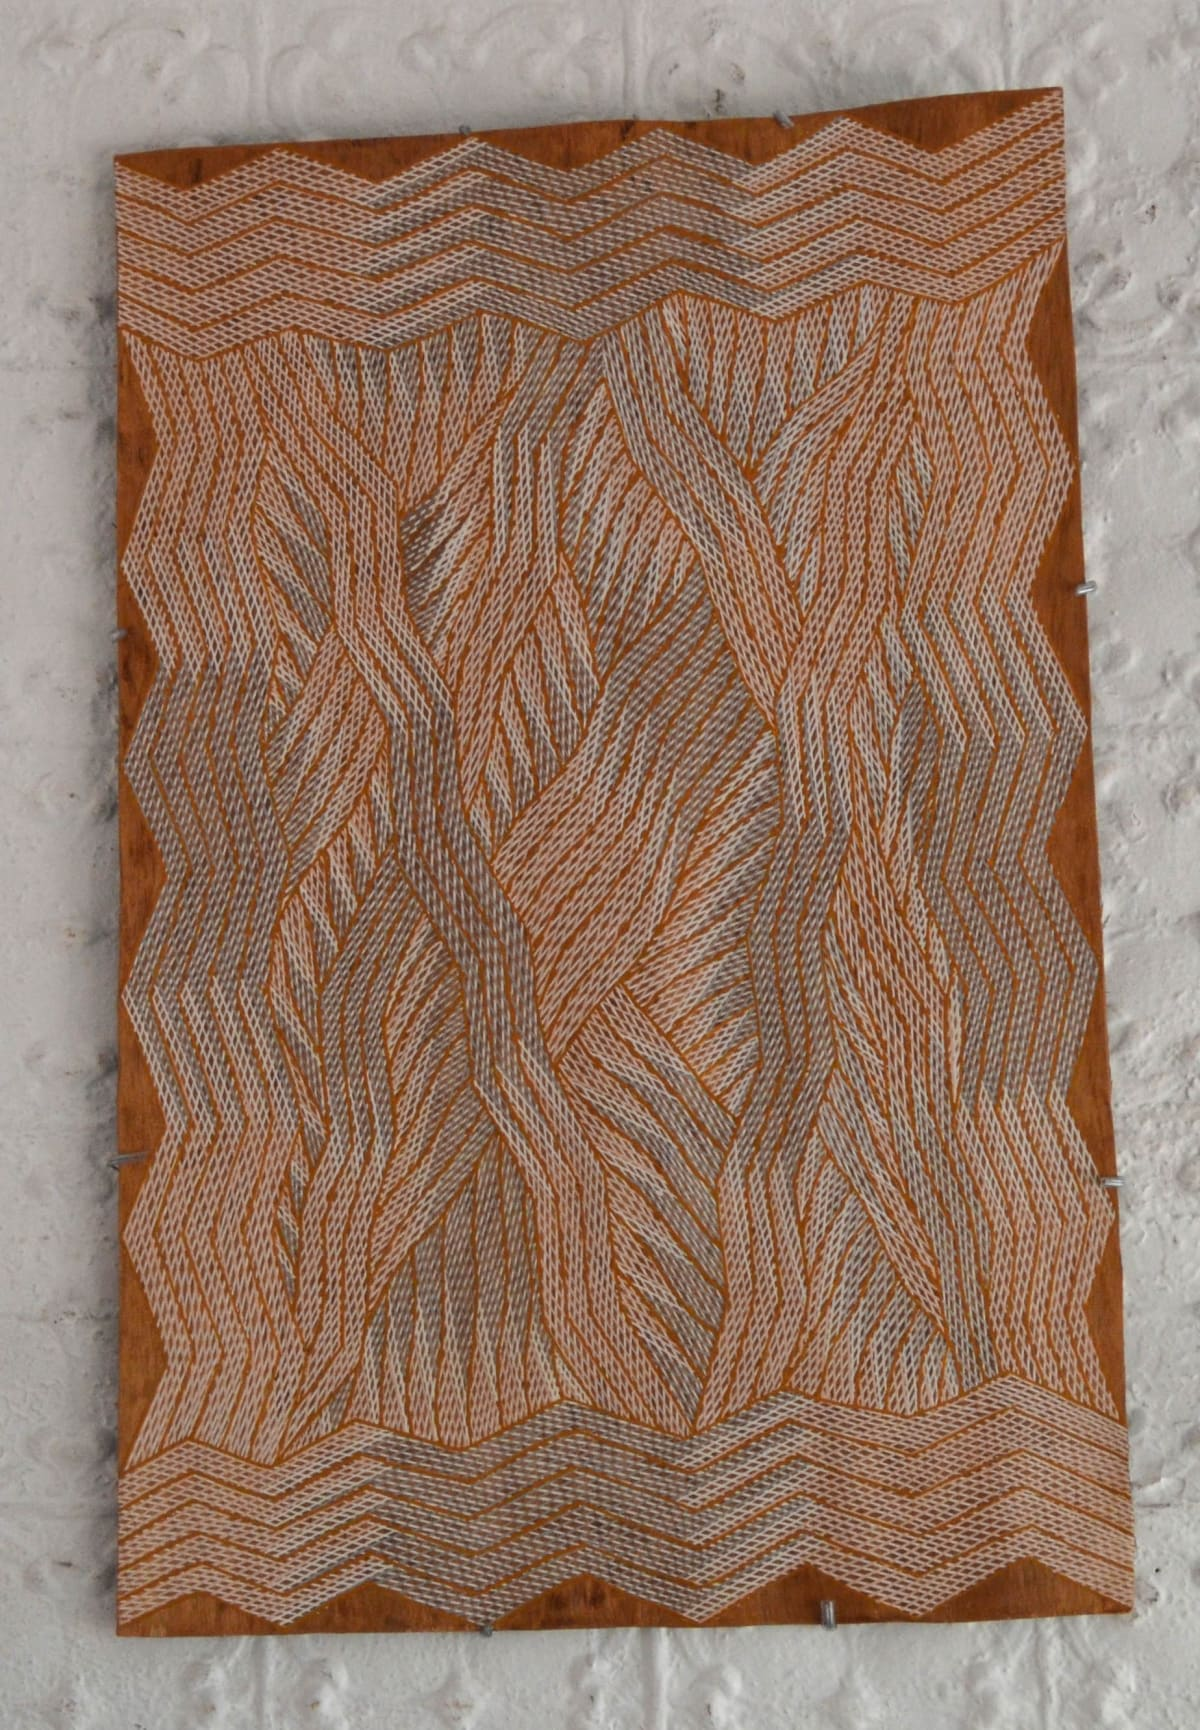 Manini Gumana Garrapara natural earth pigment on bark 53 x 79 cm